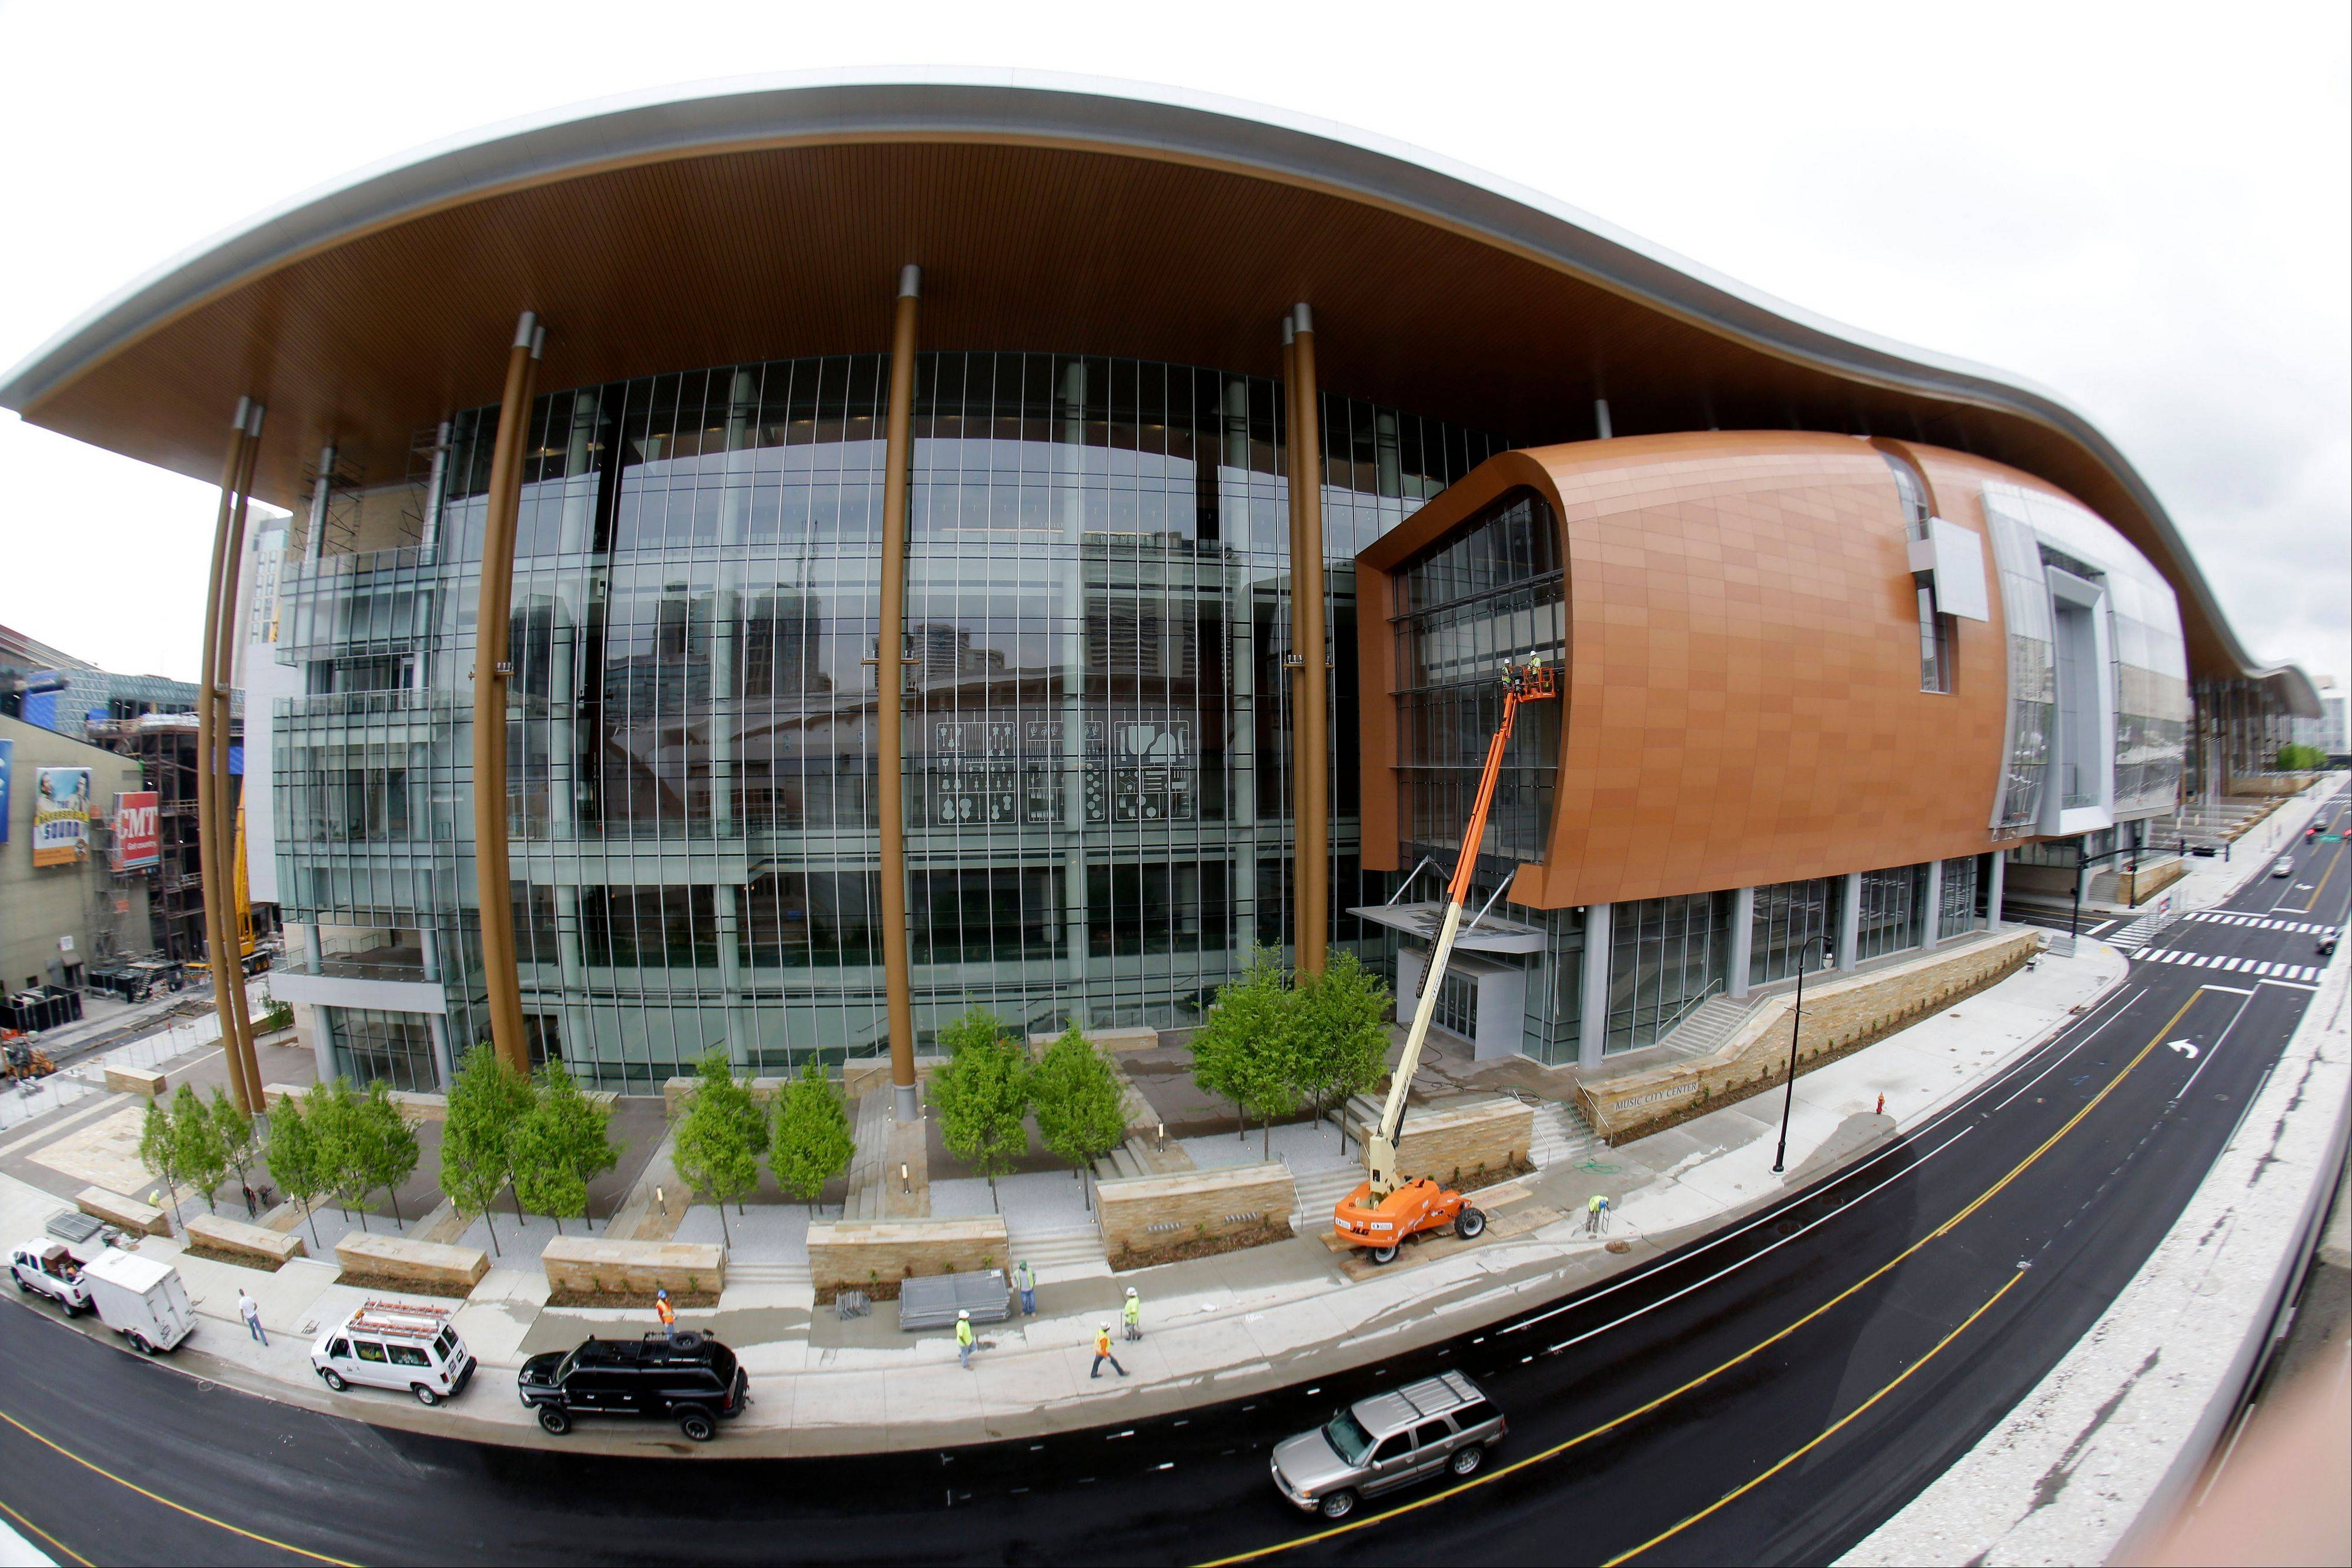 The new Music City Center is transforming the look of downtown Nashville with its wavy roof dominating six city blocks.